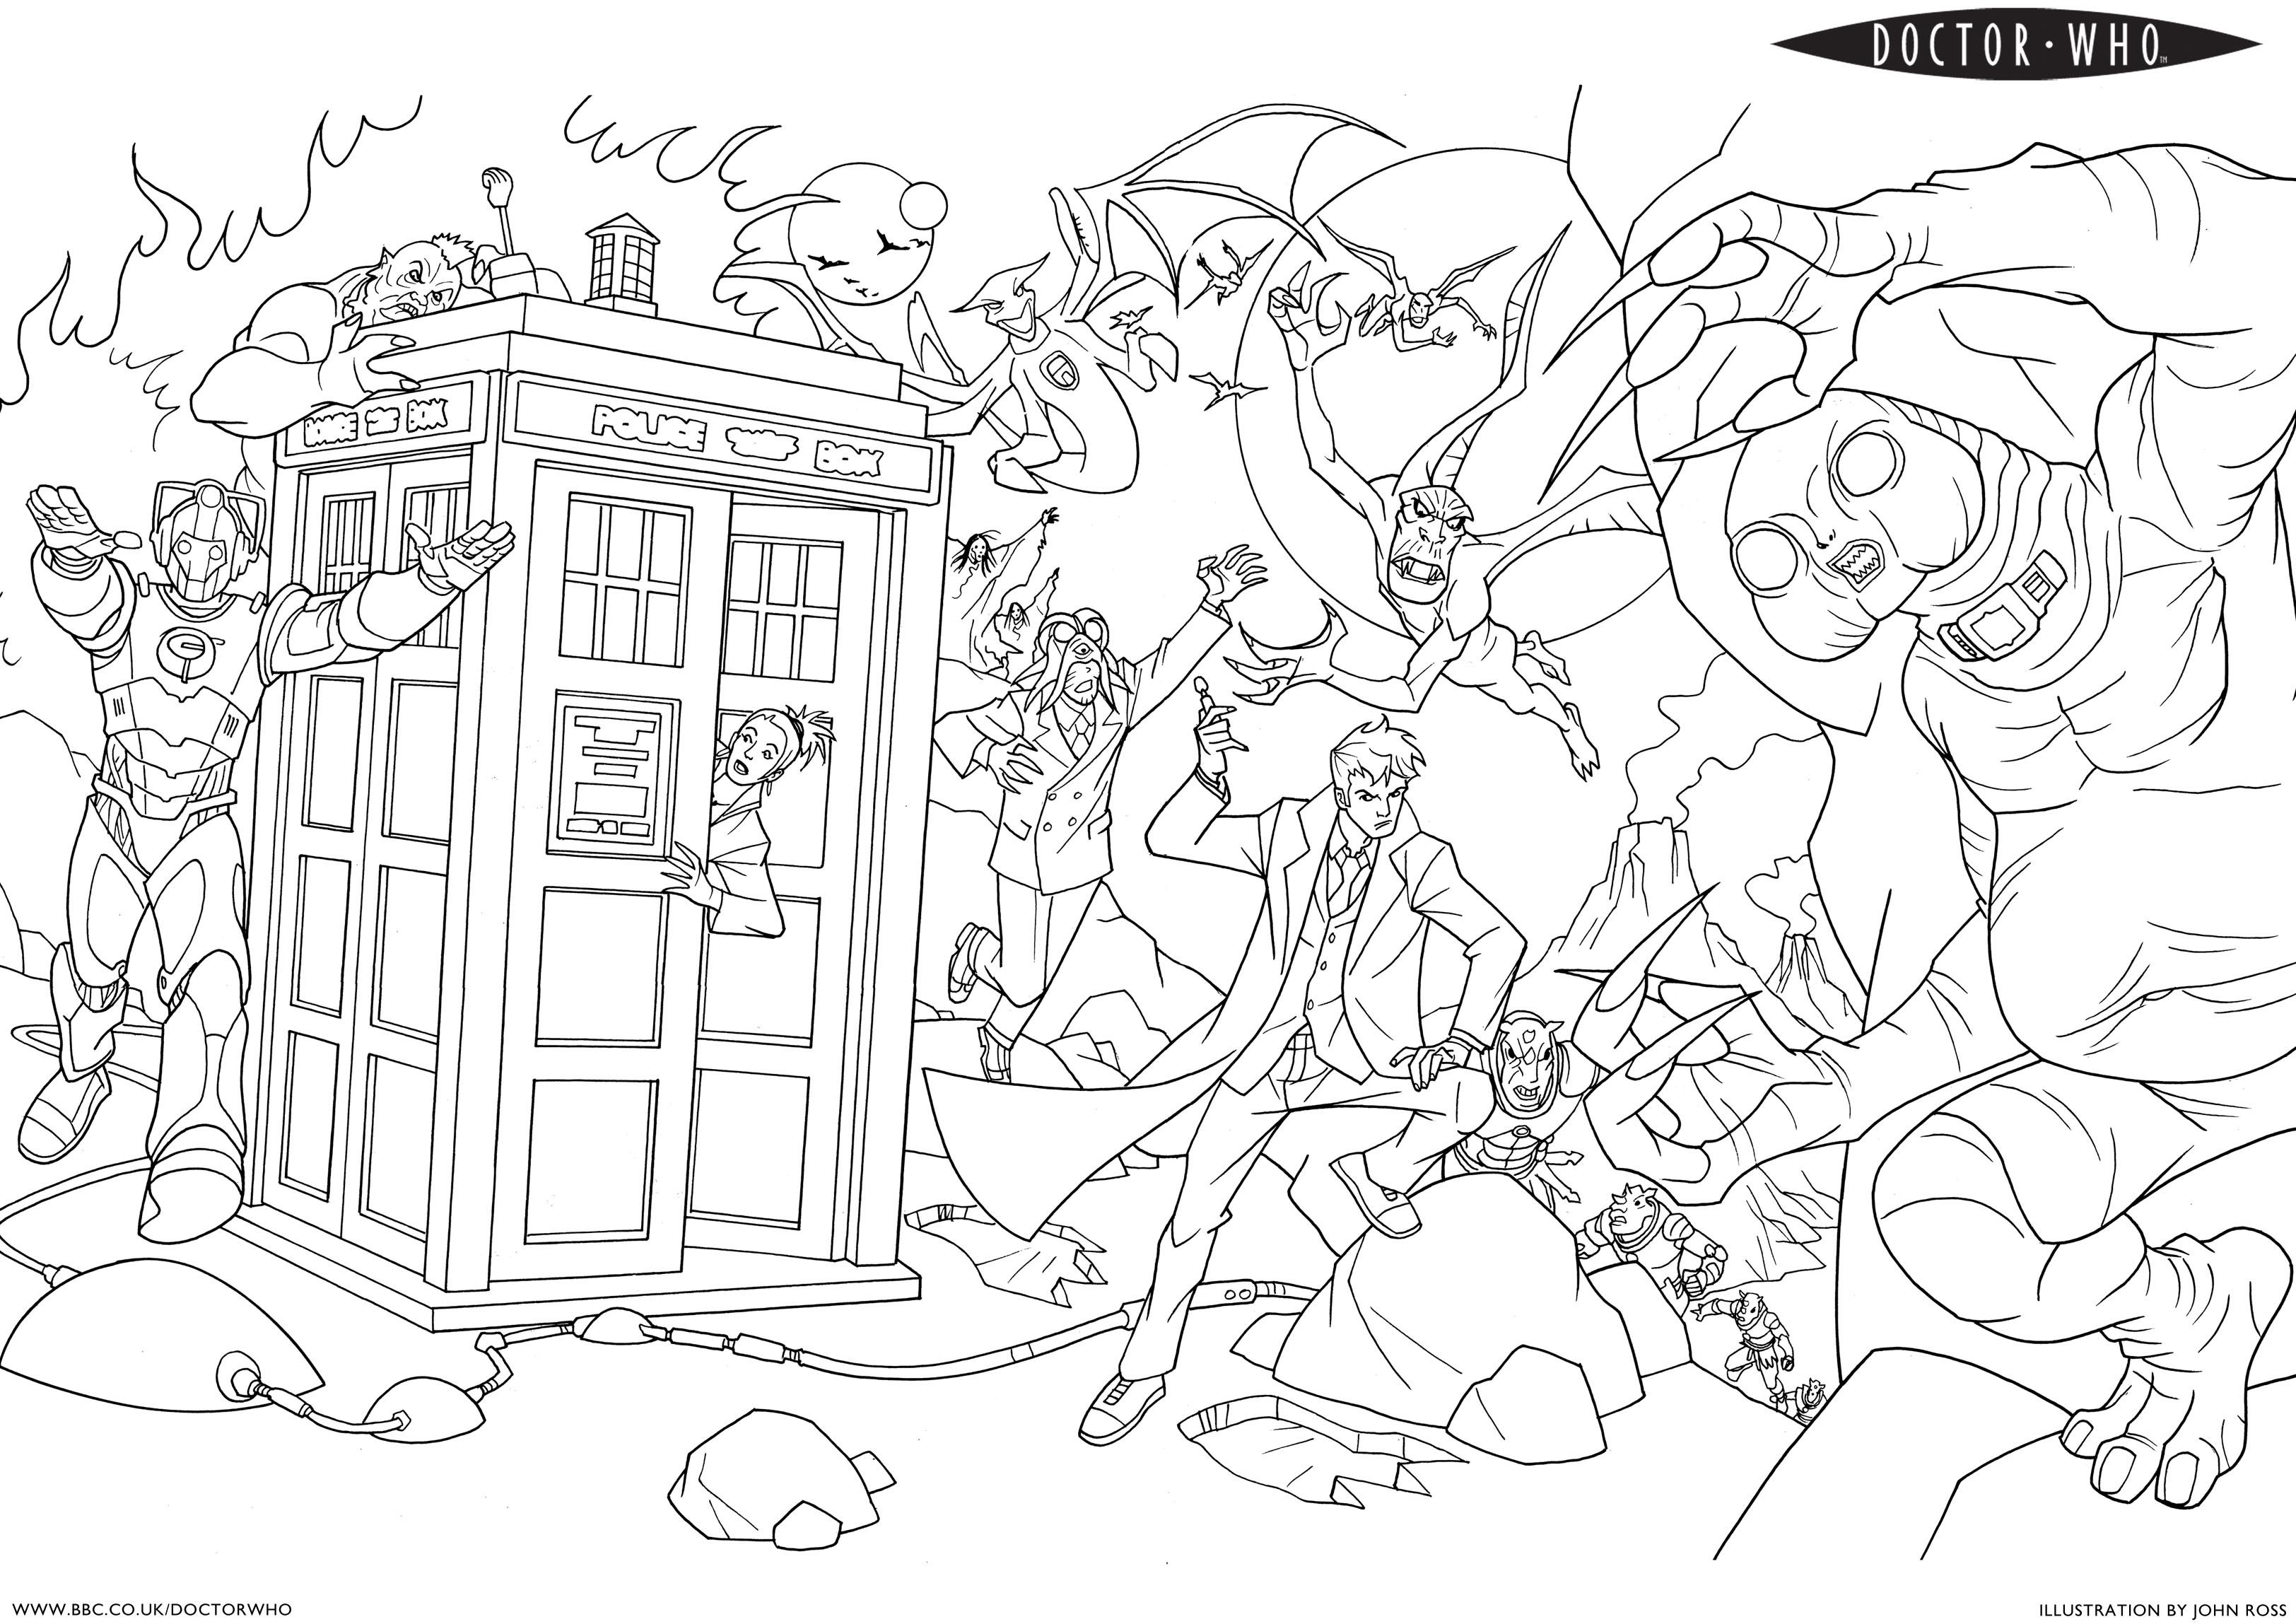 Doctor Who Coloring Pages Coloring Home Coloring Pages Doctor Who